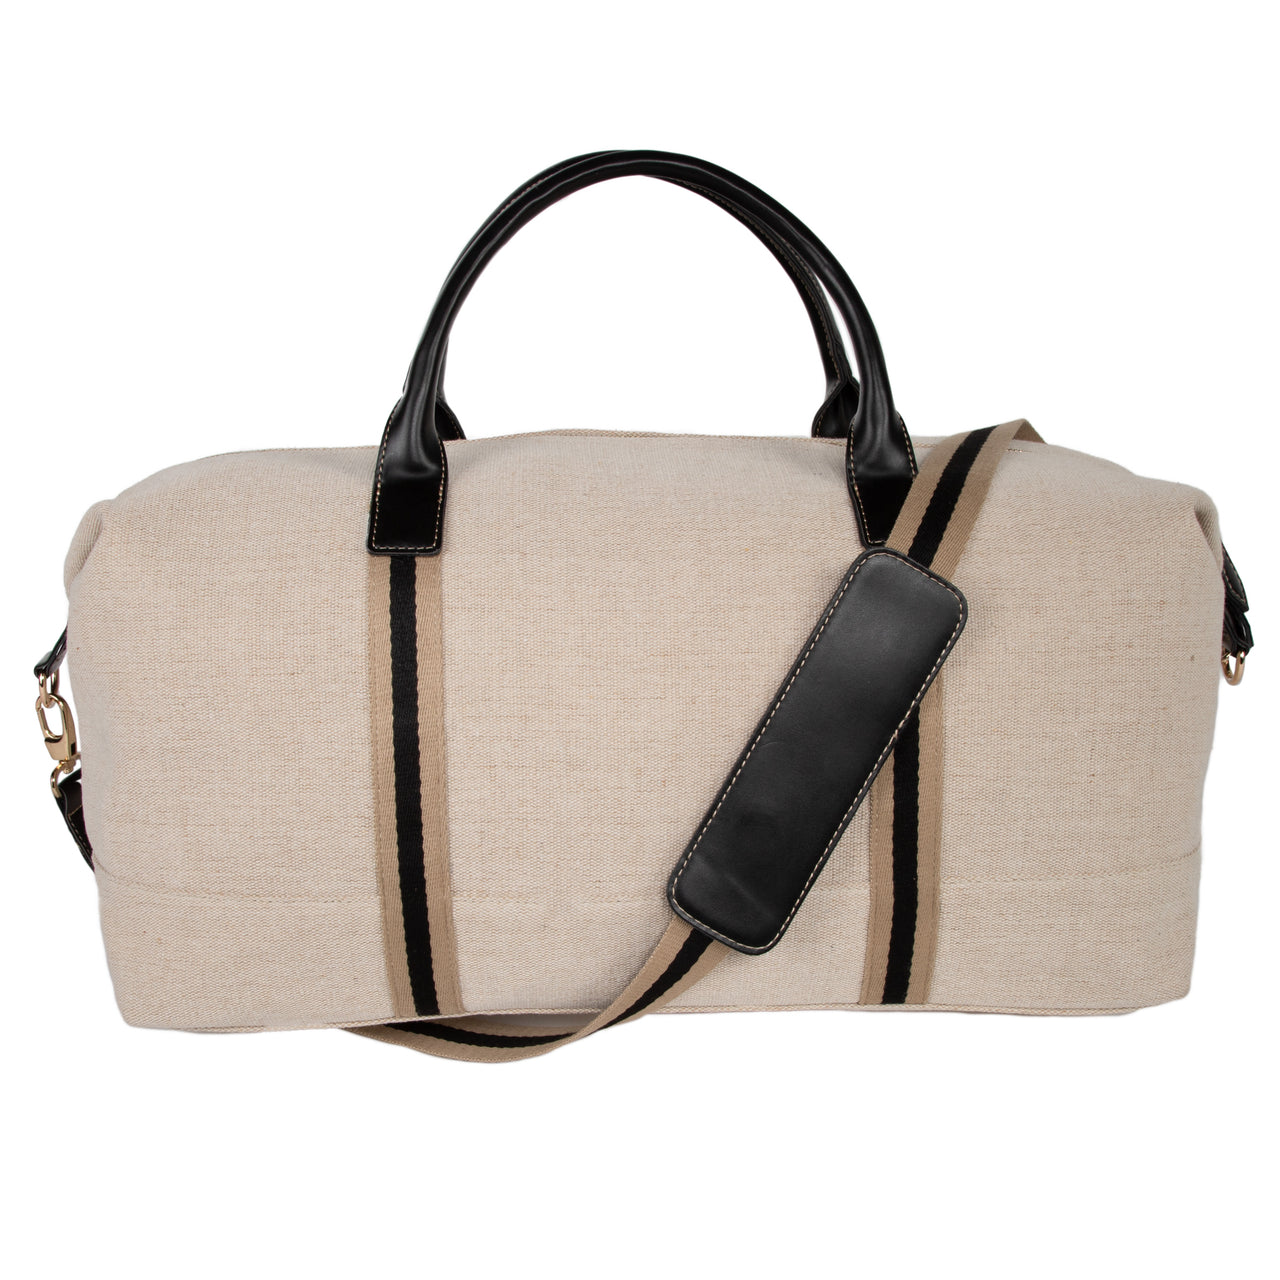 The Perry Duffel Bag